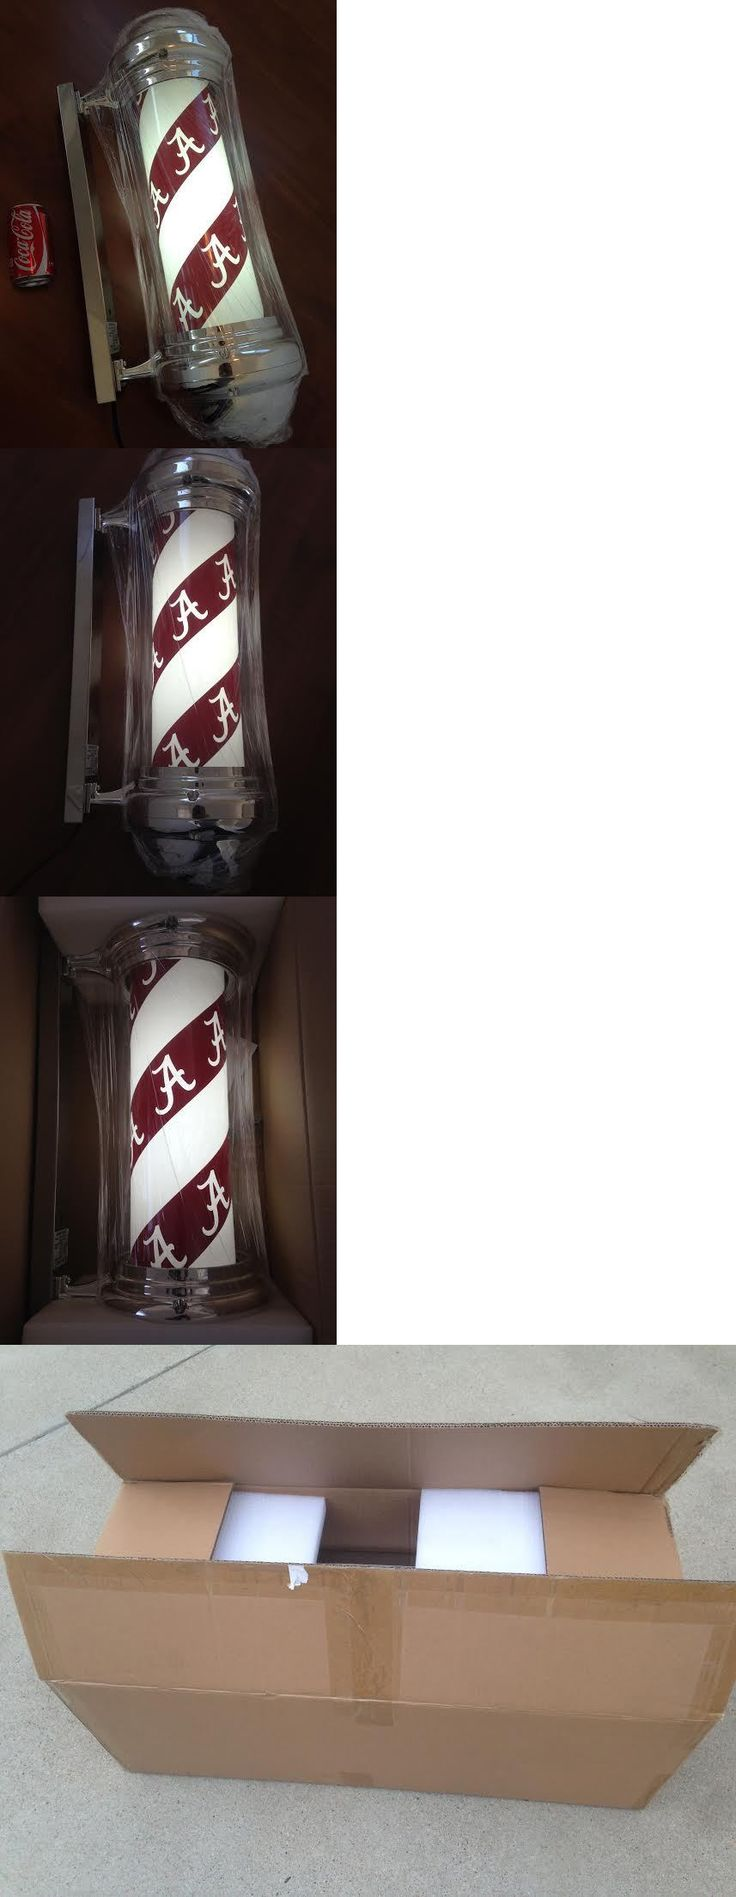 Barber shop pole distressed wall decal vintage style wall decor ebay - Other Salon And Spa Equipment Alabama Football Crimson Tide Ncaa Barber Pole Bar Mancave Neon